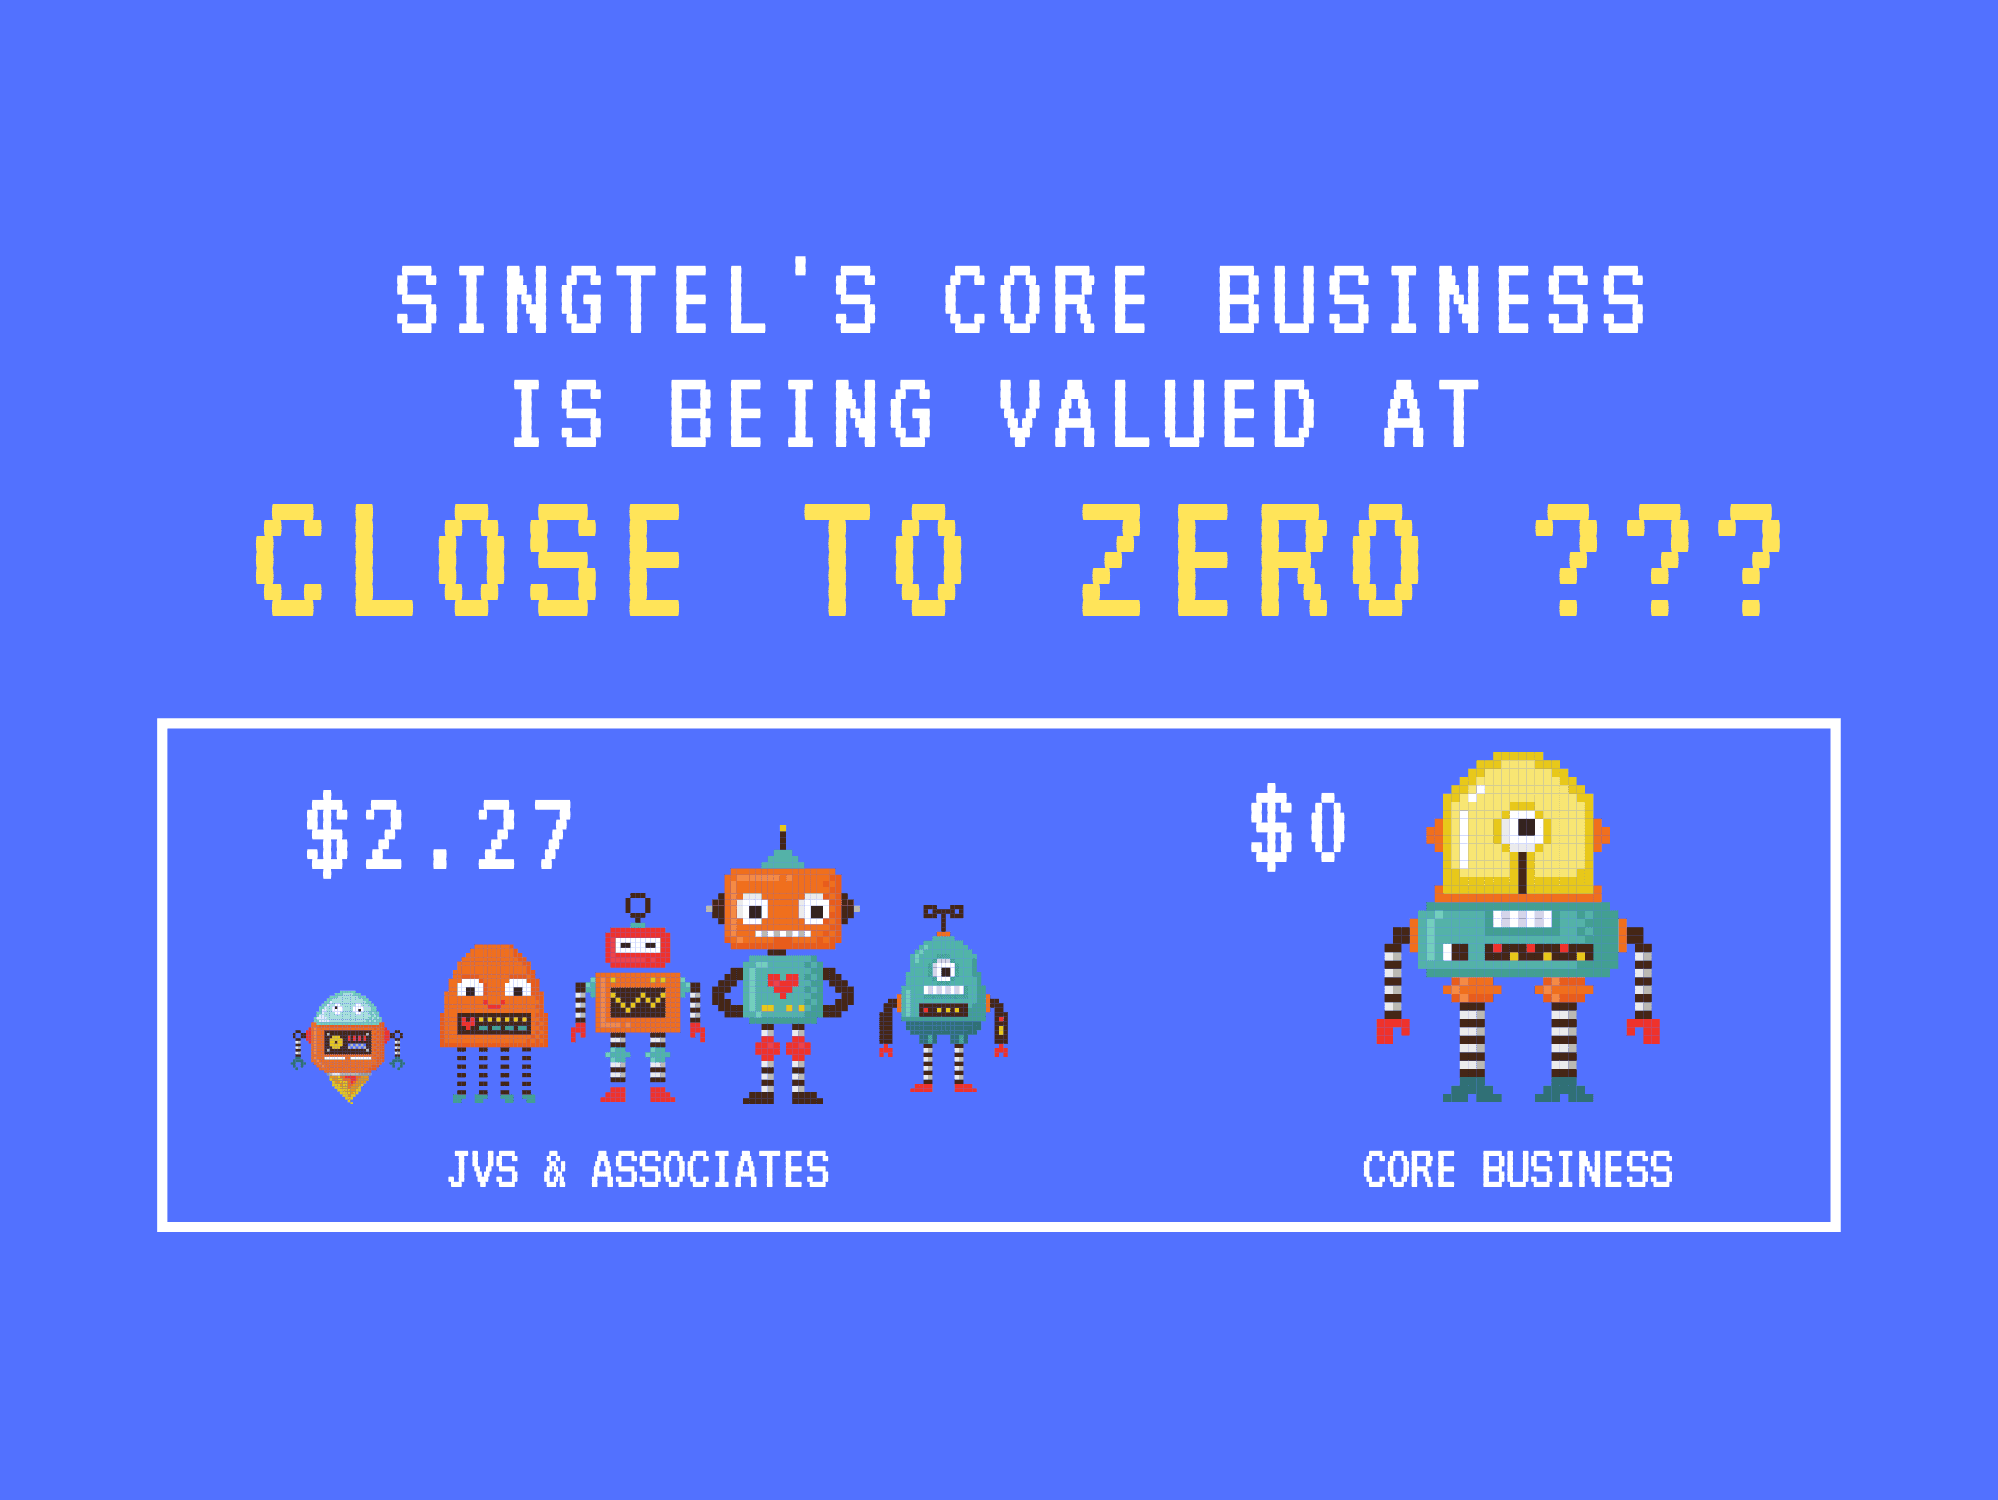 Singtel's Core Business is being valued CLOSE TO ZERO?!